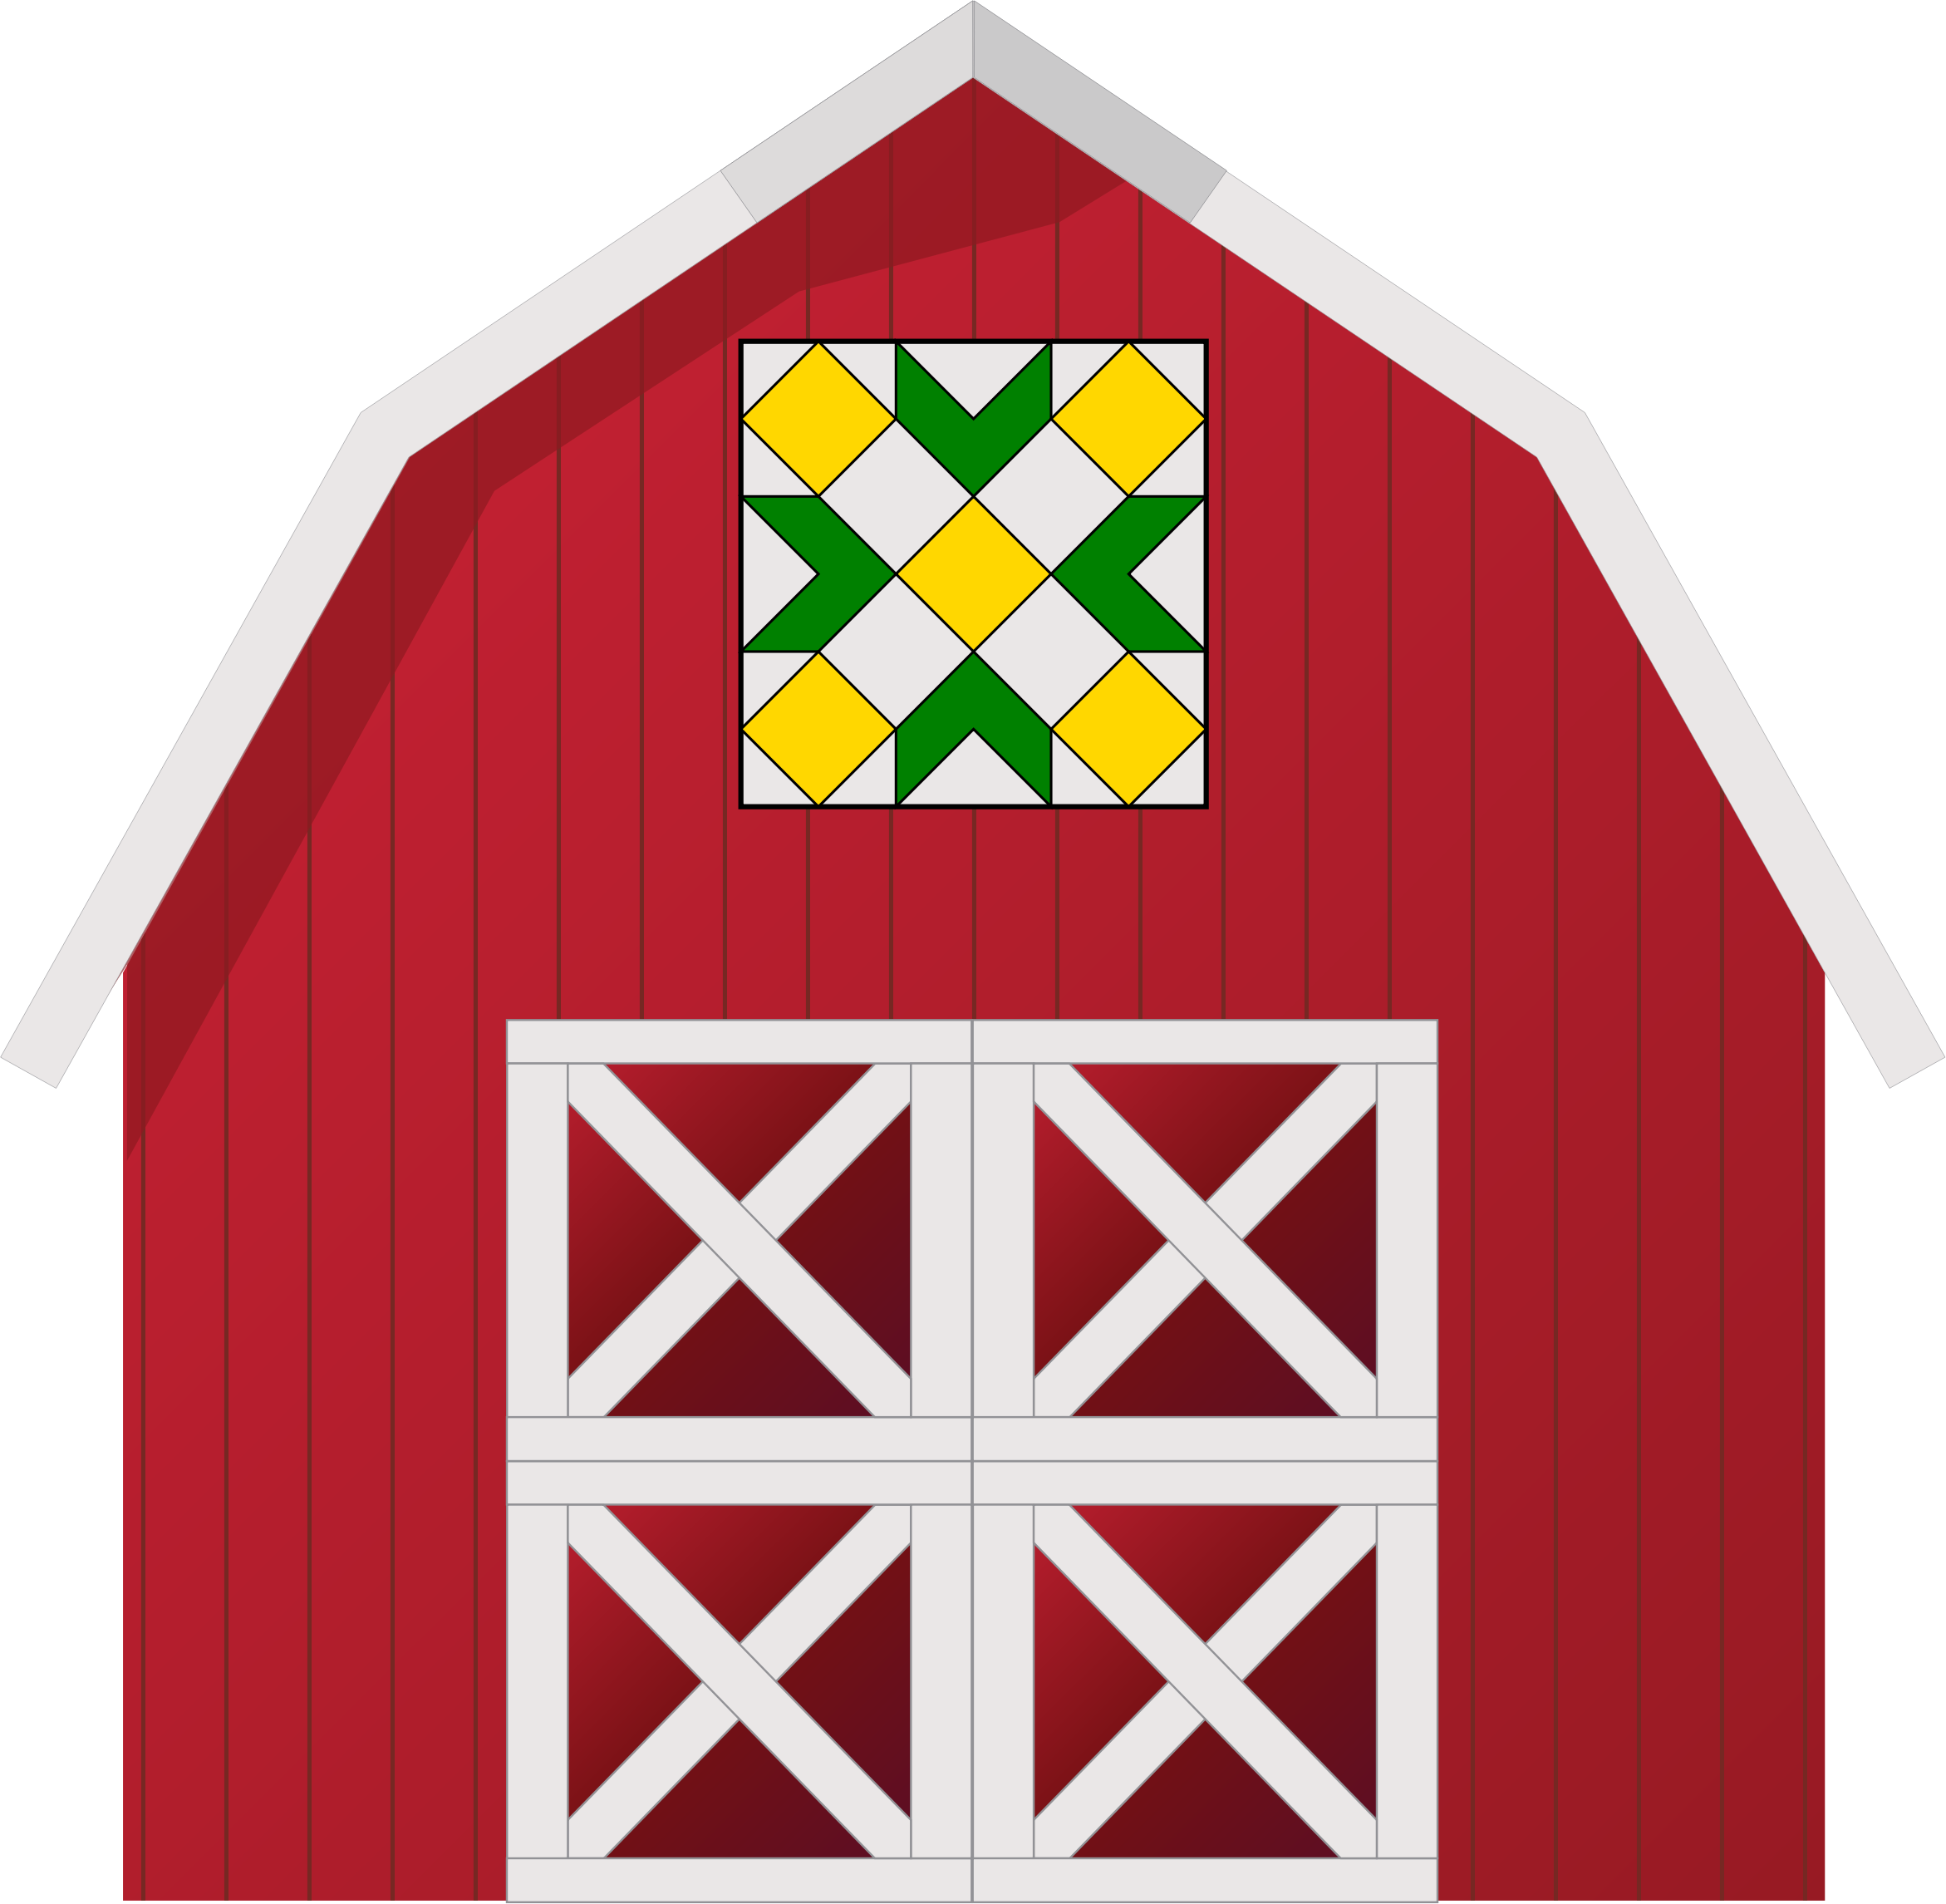 Barn Quilt 1 by JayNick